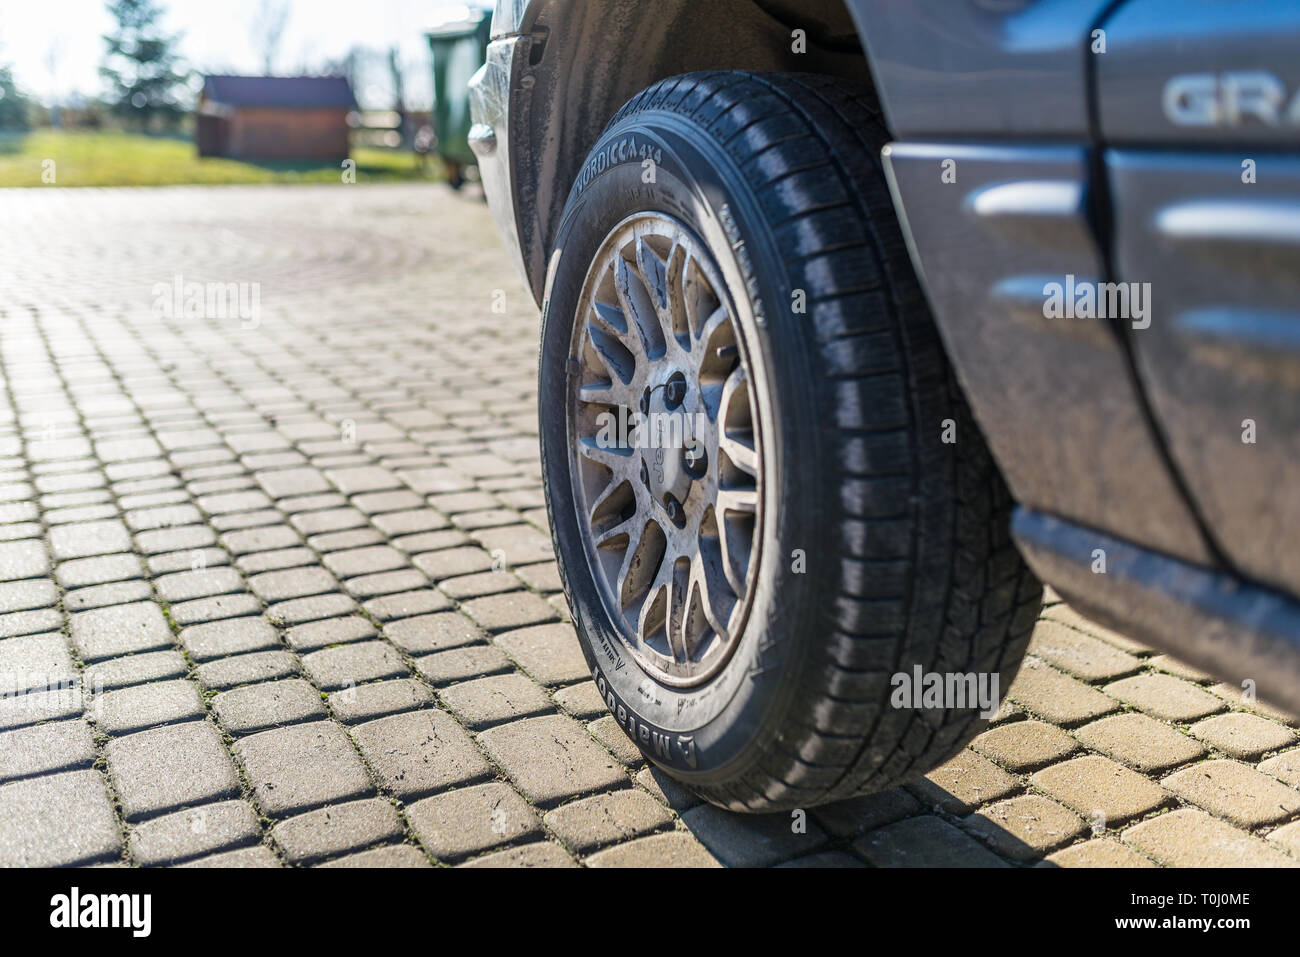 Torun, Poland - February 16, 2019. The view of the front, left wheel with aluminum rim, the Jeep Grand Cherokee WJ produced in 2002 with a diesel engi - Stock Image